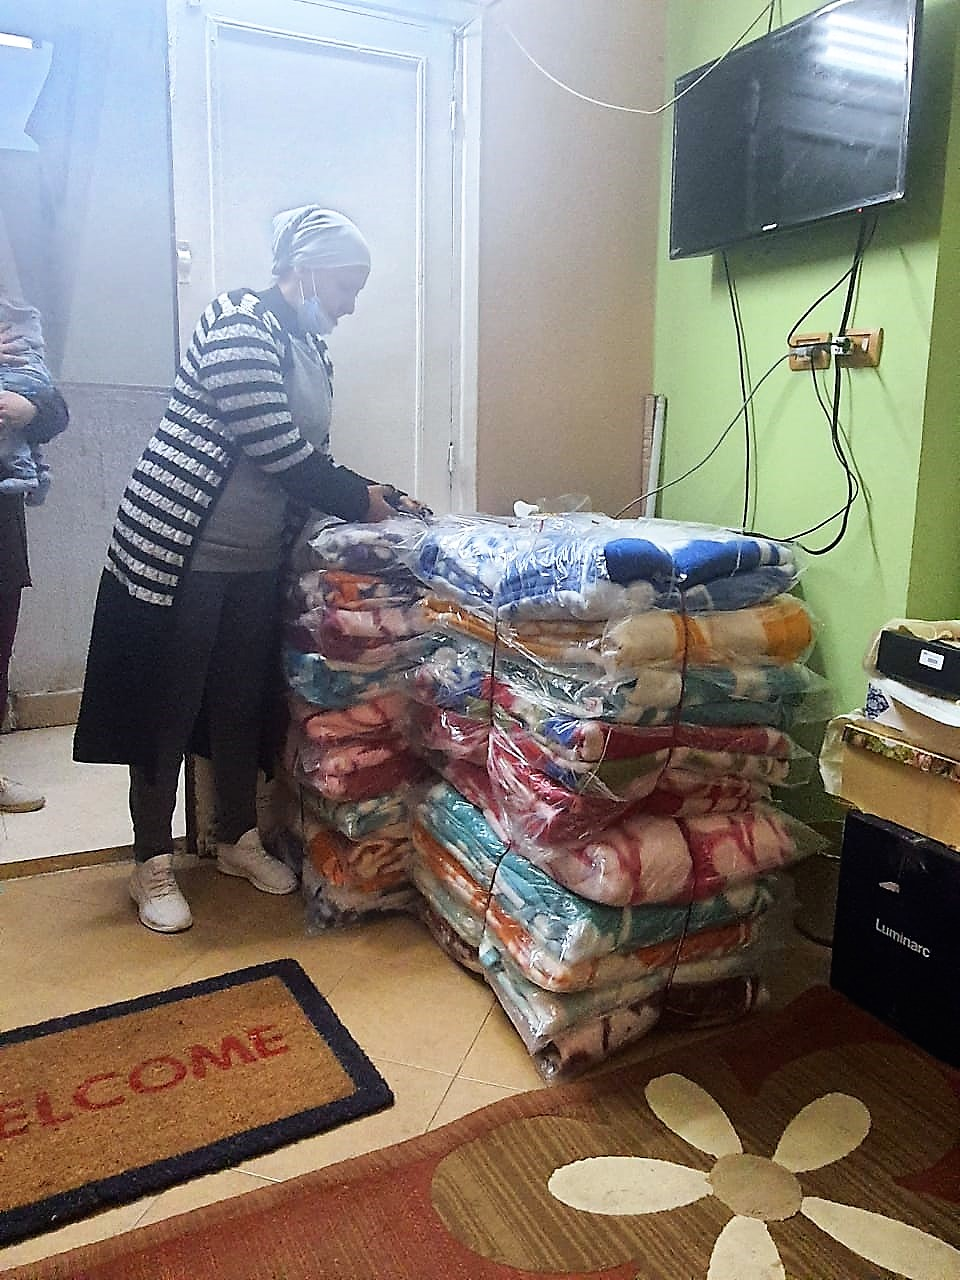 3- Distribution of Blankets